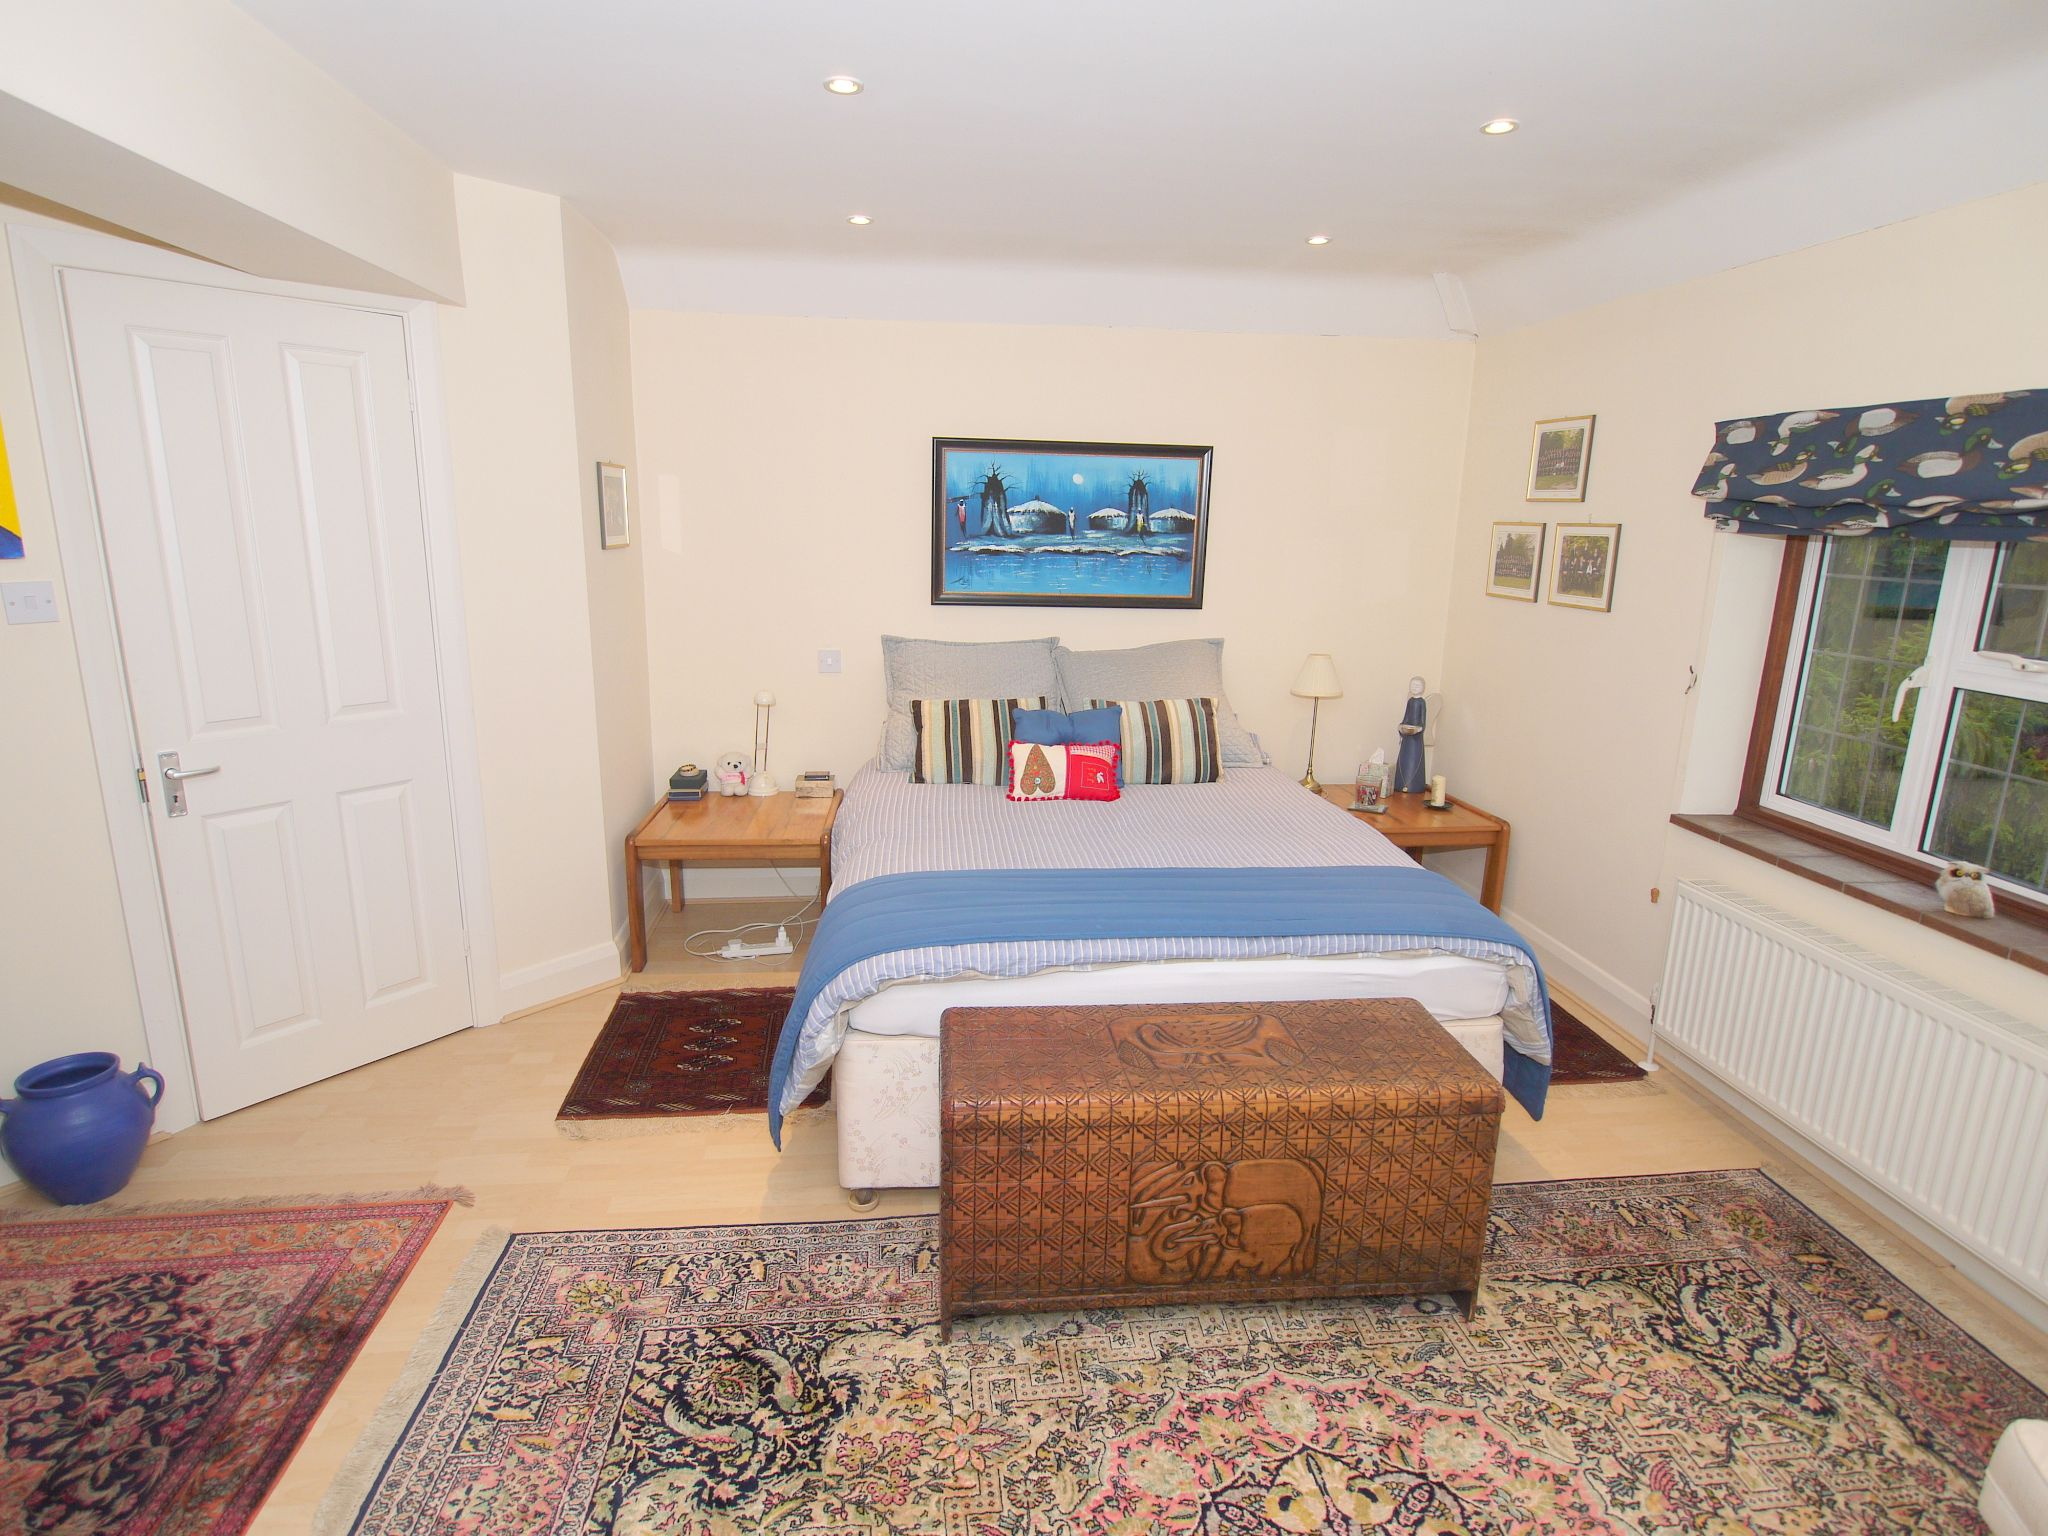 6 bedroom detached house For Sale in Sevenoaks - Photograph 16